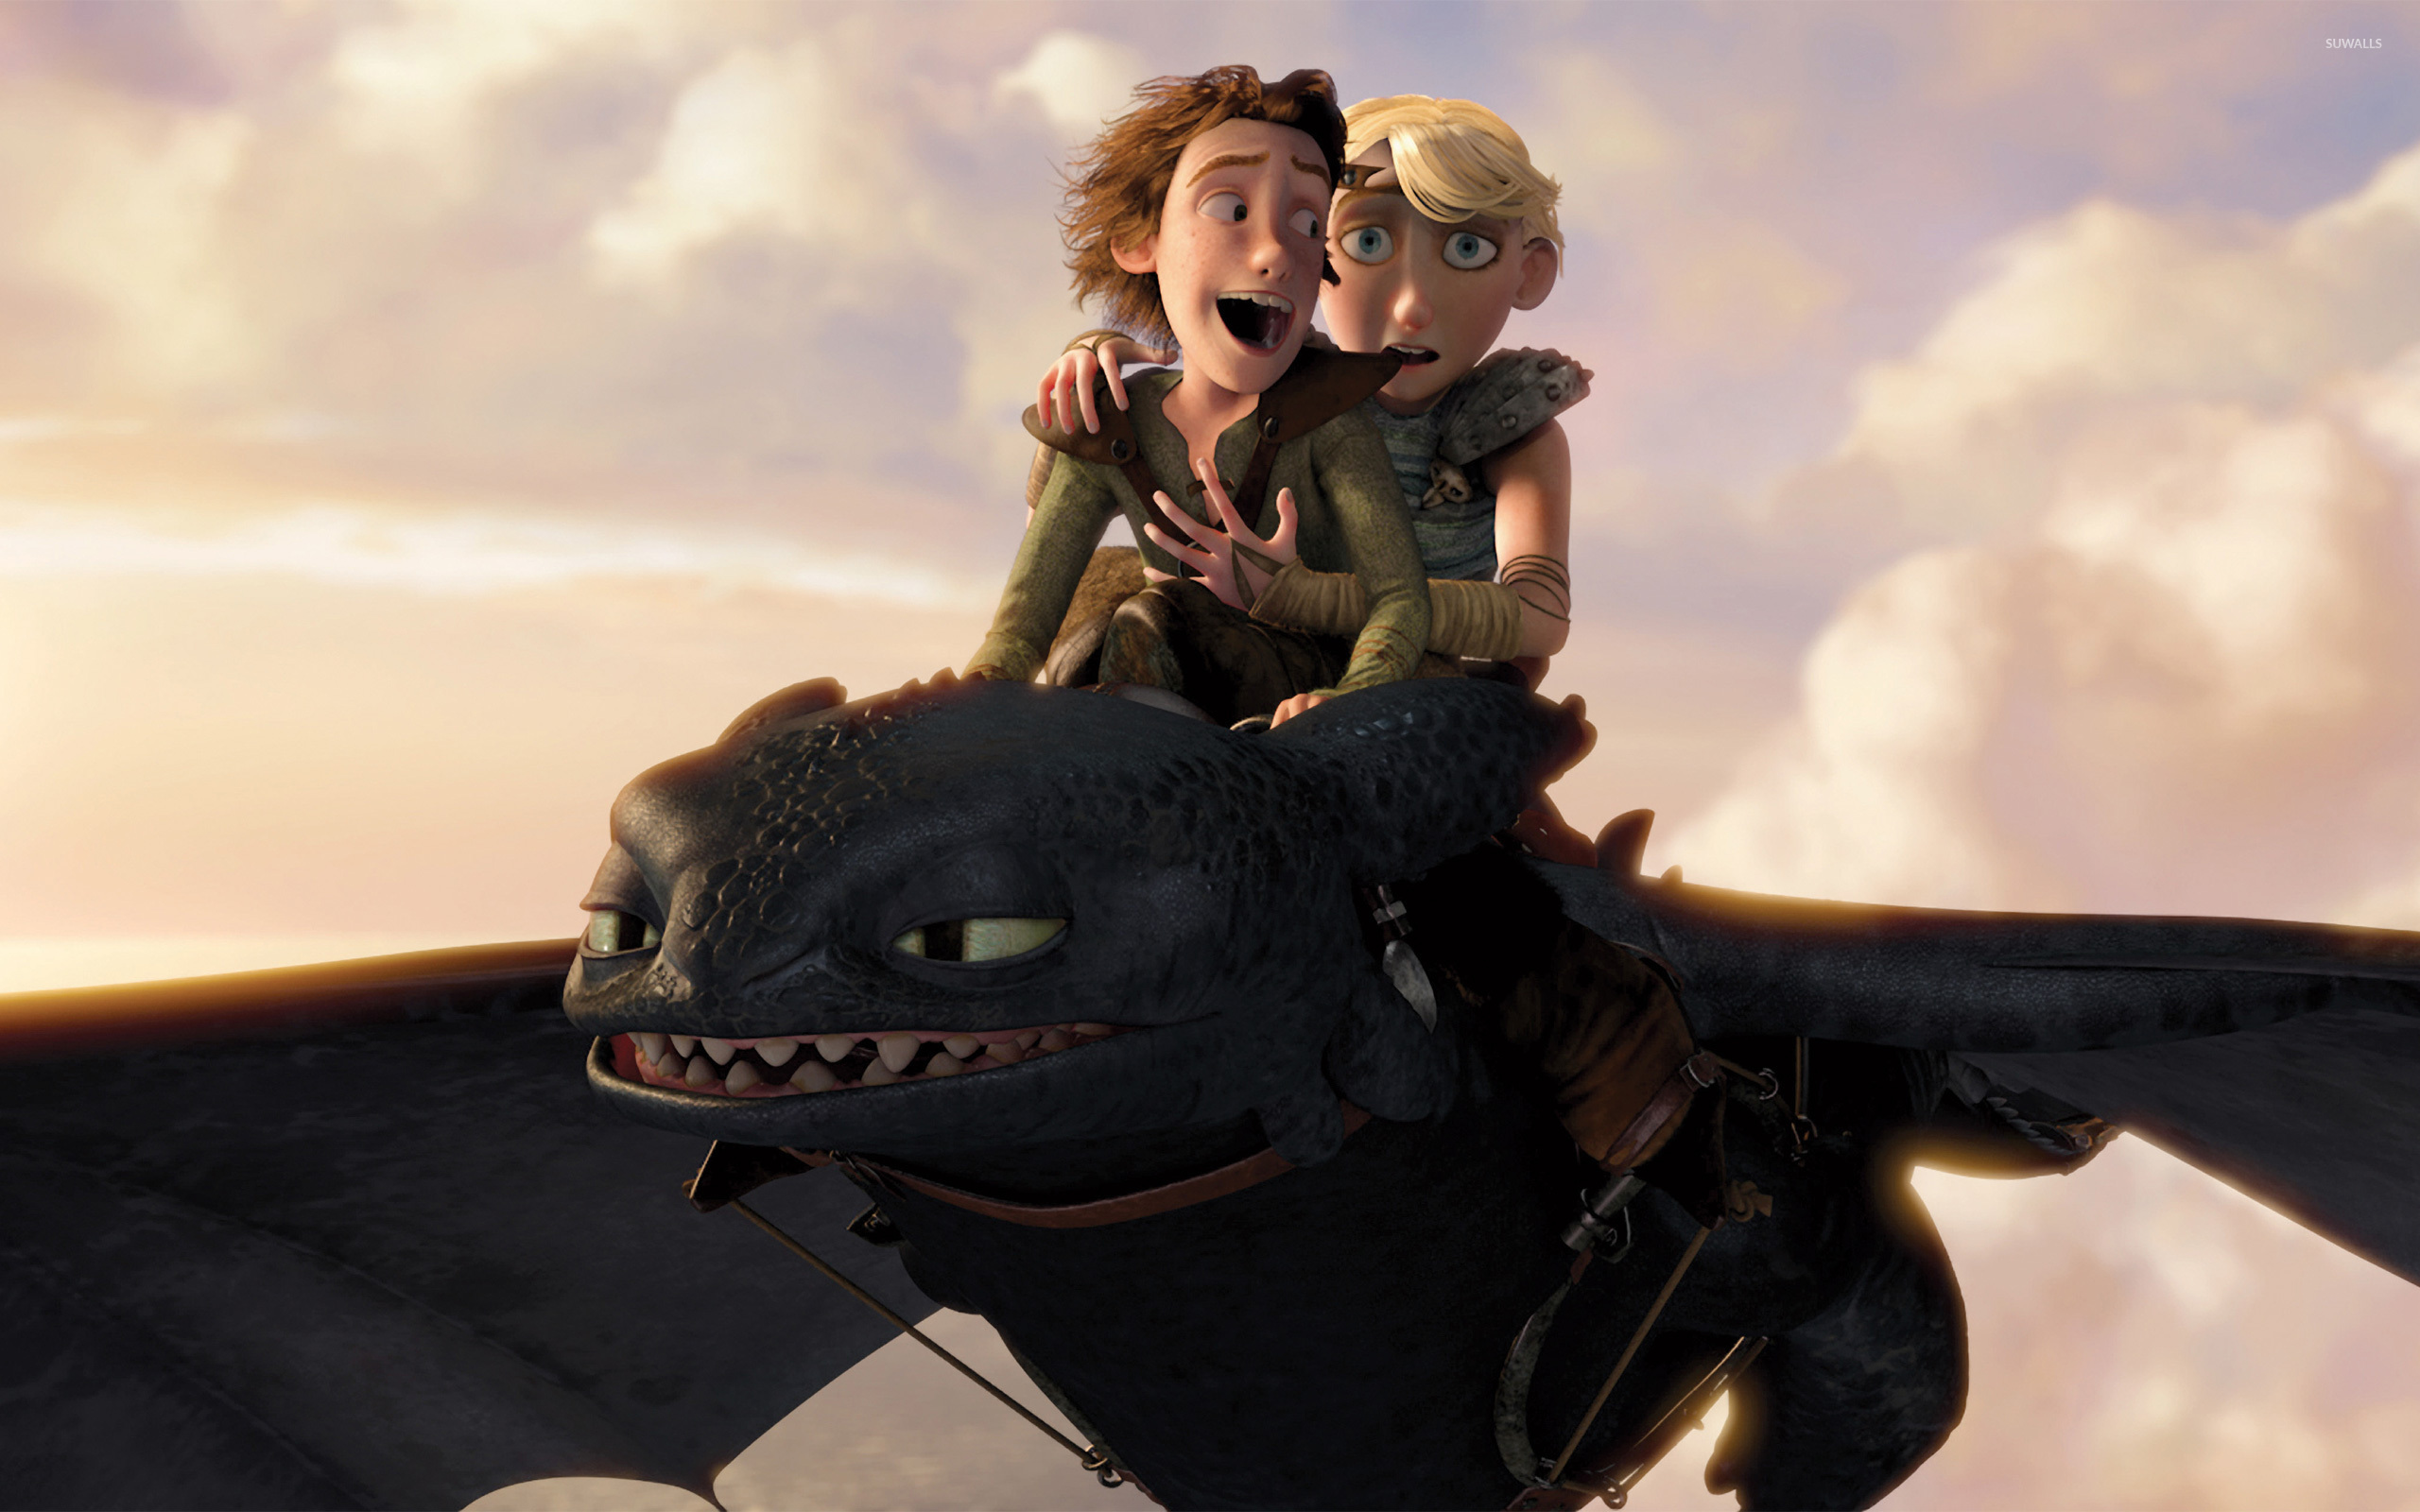 How To Train Your Dragon 4 Wallpaper